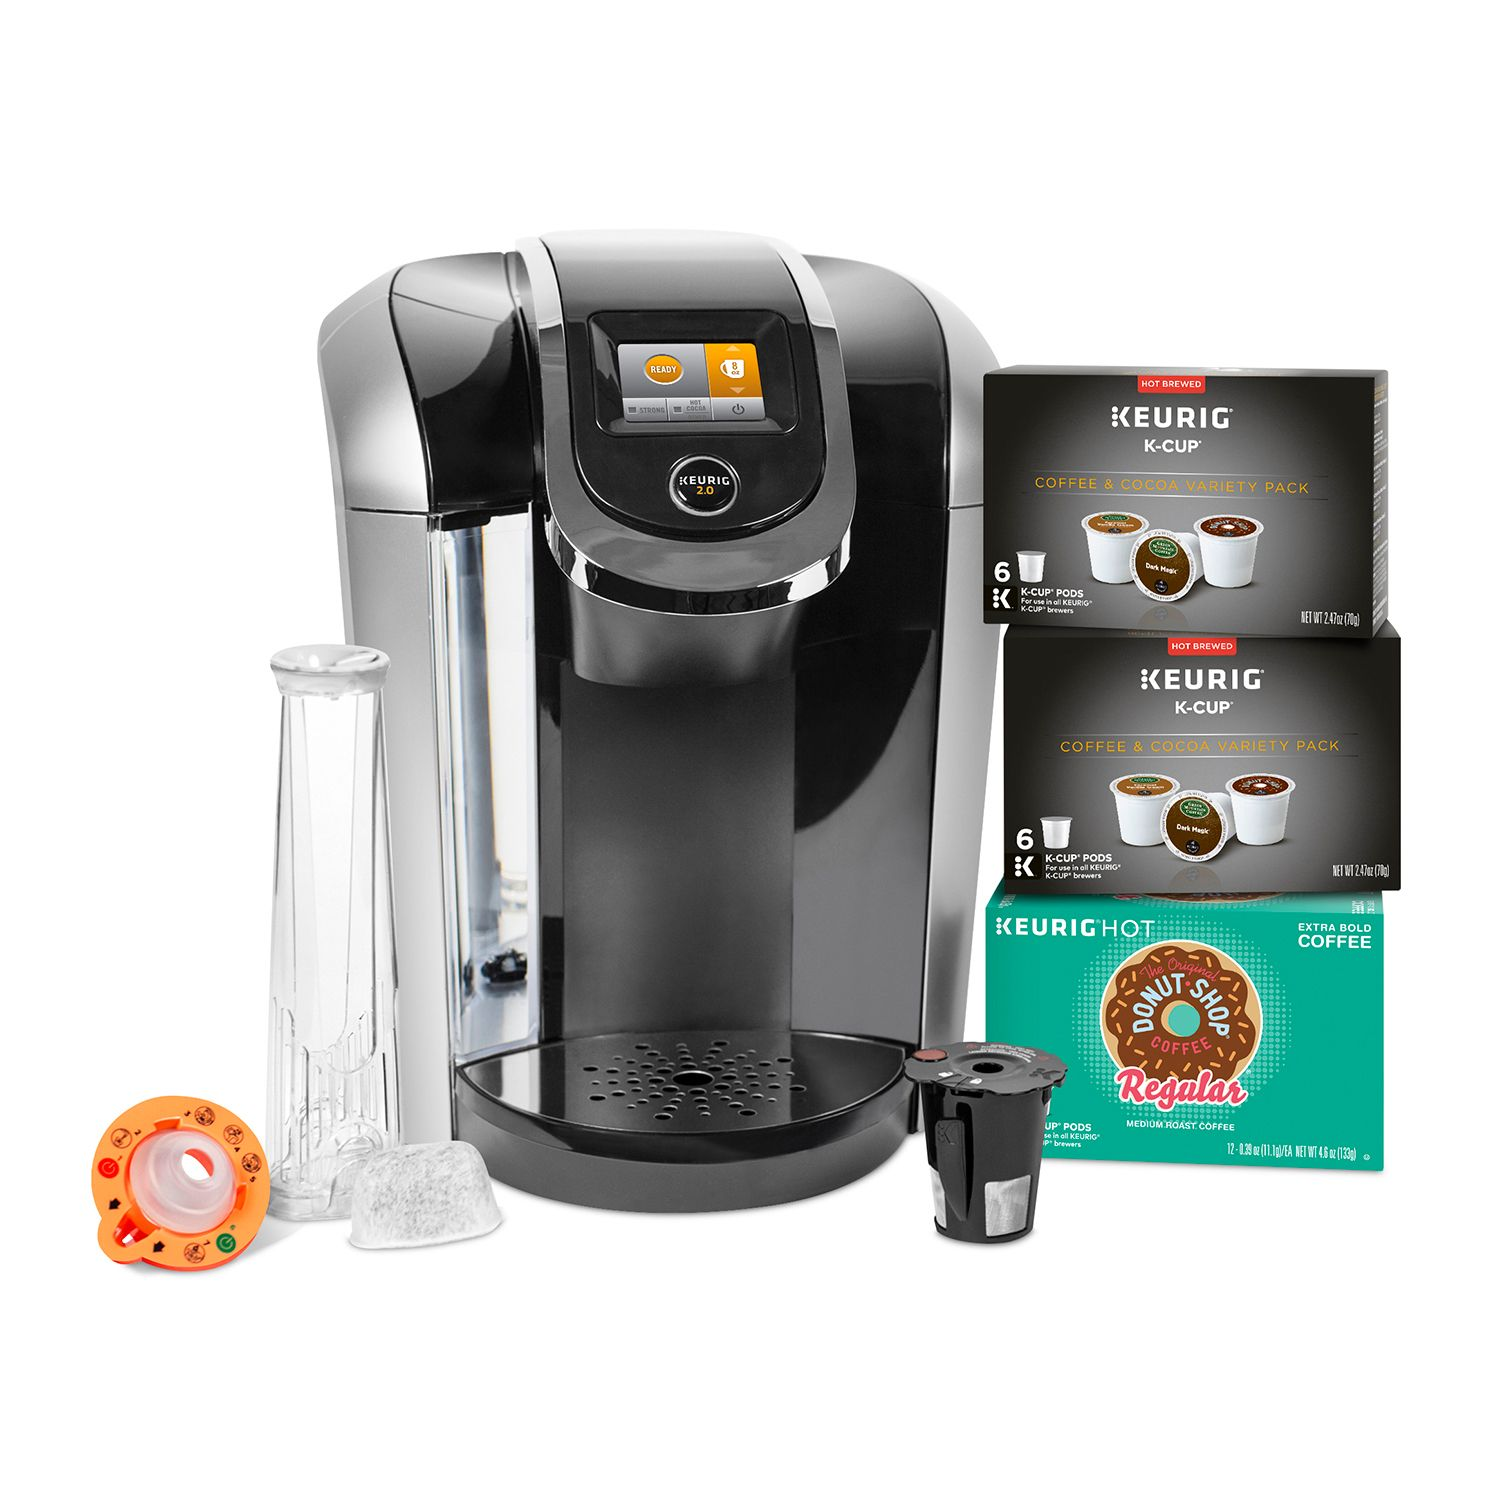 Keurig K425S Coffee Maker with 24 K-Cup Pods & Reusable K-Cup 2.0 Coffee Filter